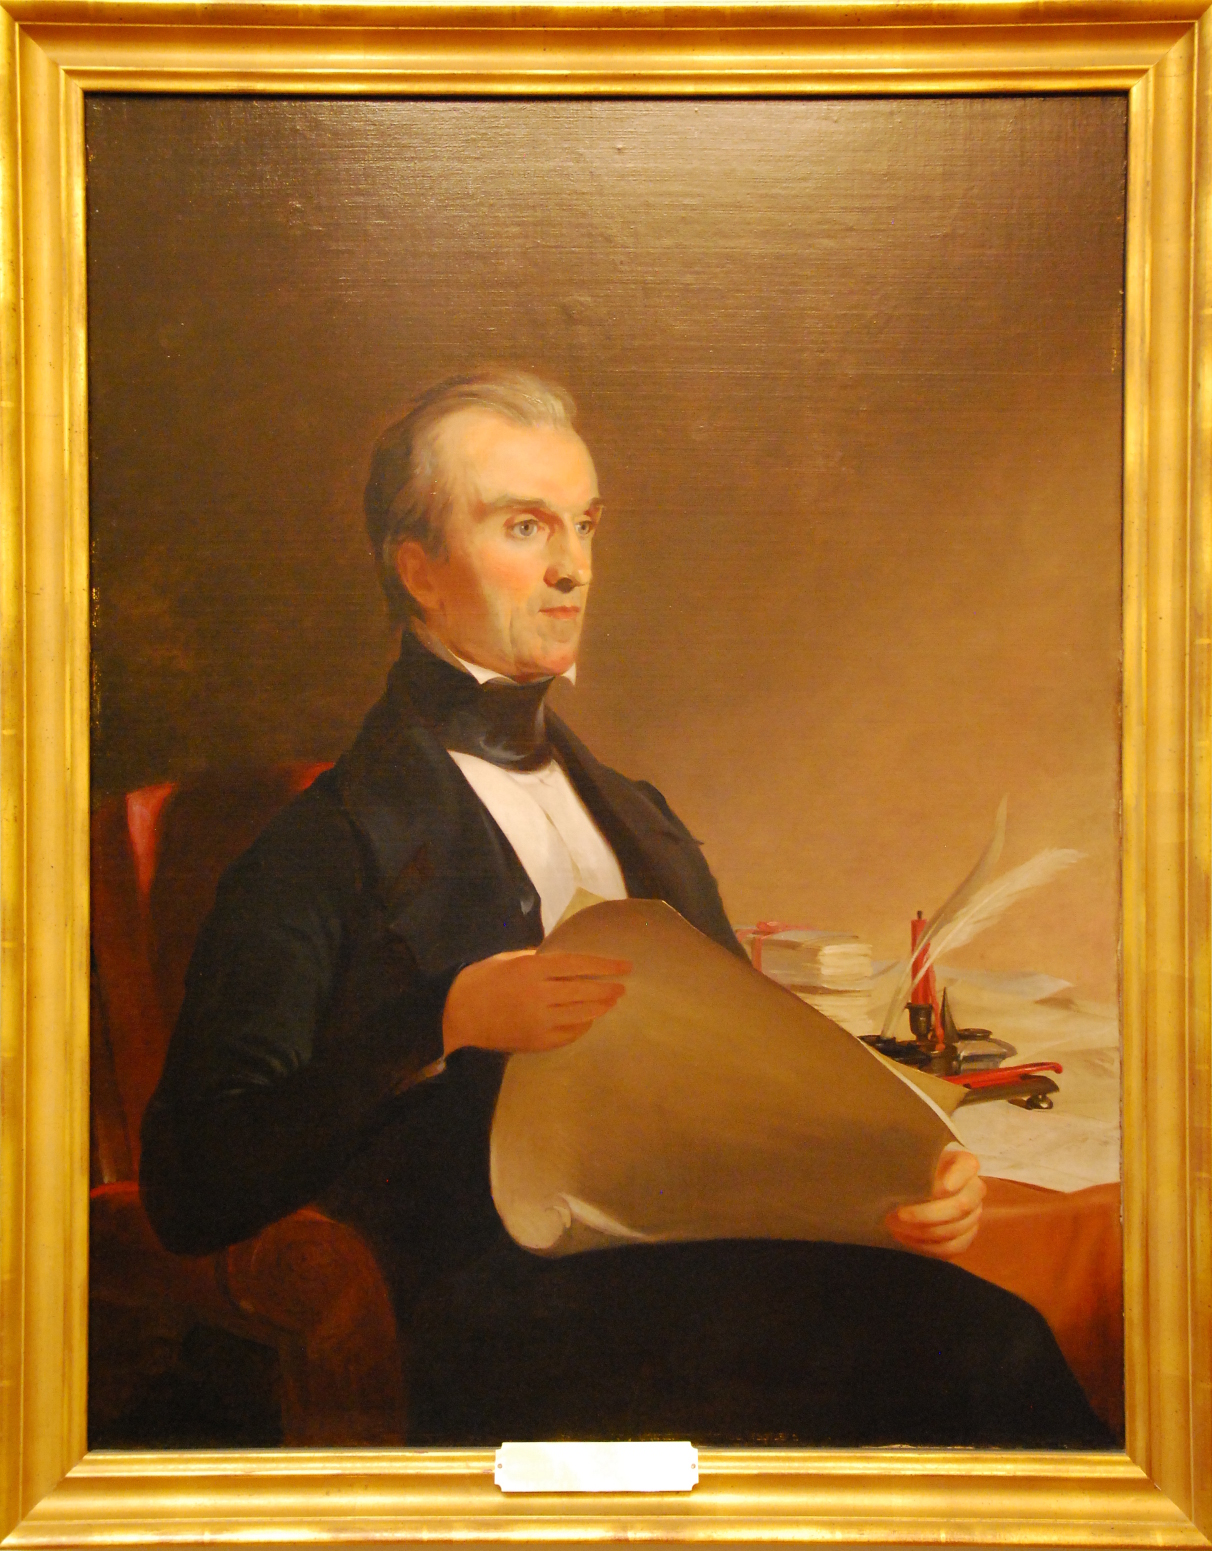 Portrait of James K. Polk sitting in a chair looking to the right.